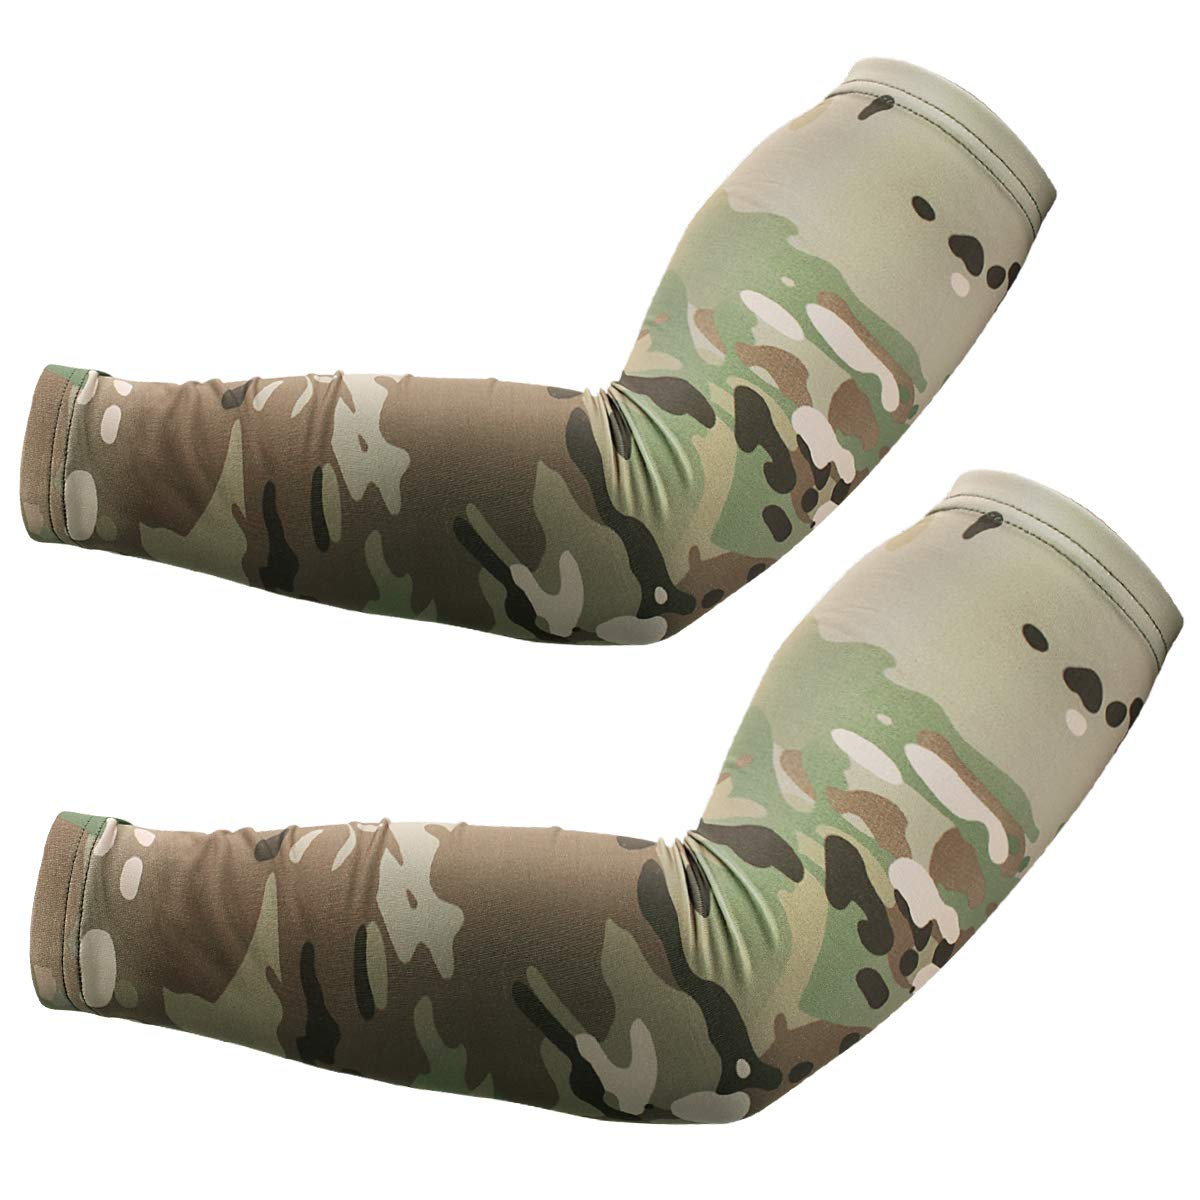 JIUSY 2 pcs - Camouflage Elastic Sports Compression Arm Sleeves Cool Sun Block UV Protection Tattoo Cover Arm Warmer for Bicycle Hunting Basketball Baseball Football